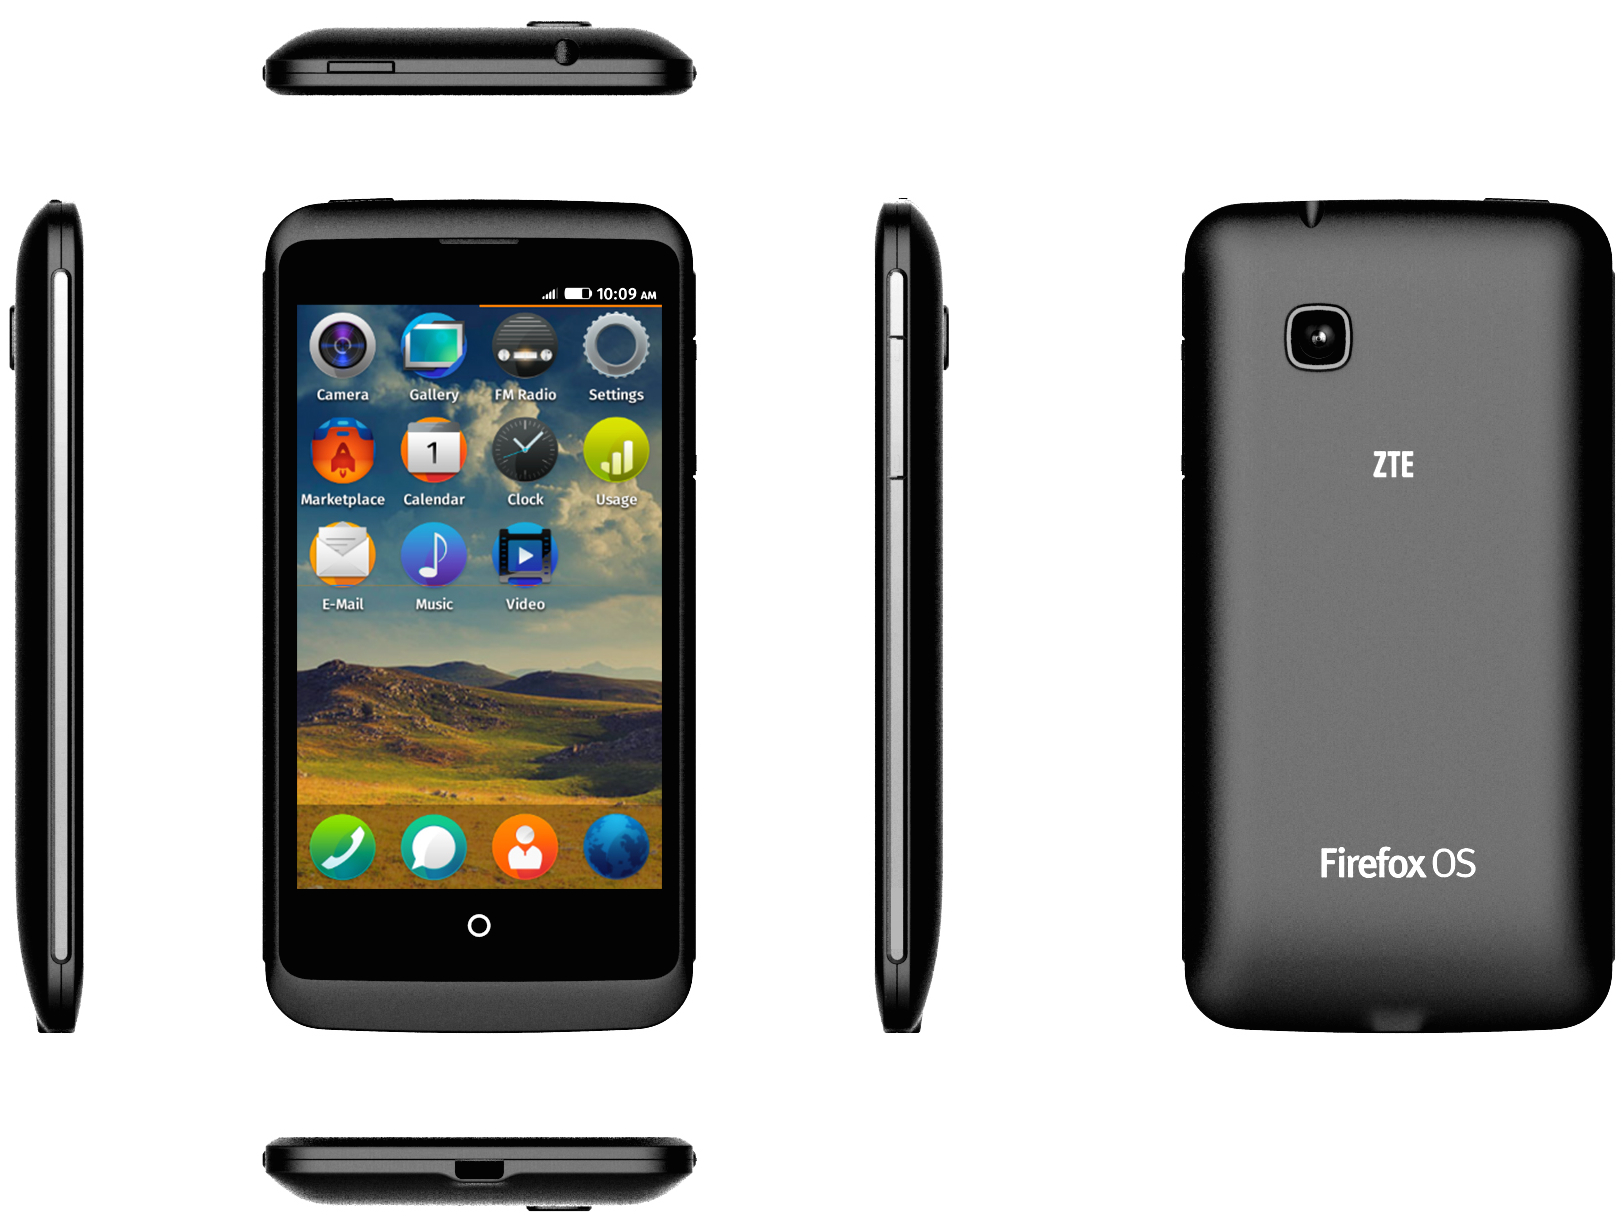 Mozilla Firefox Phone Specs, India Price, Features, Pictures